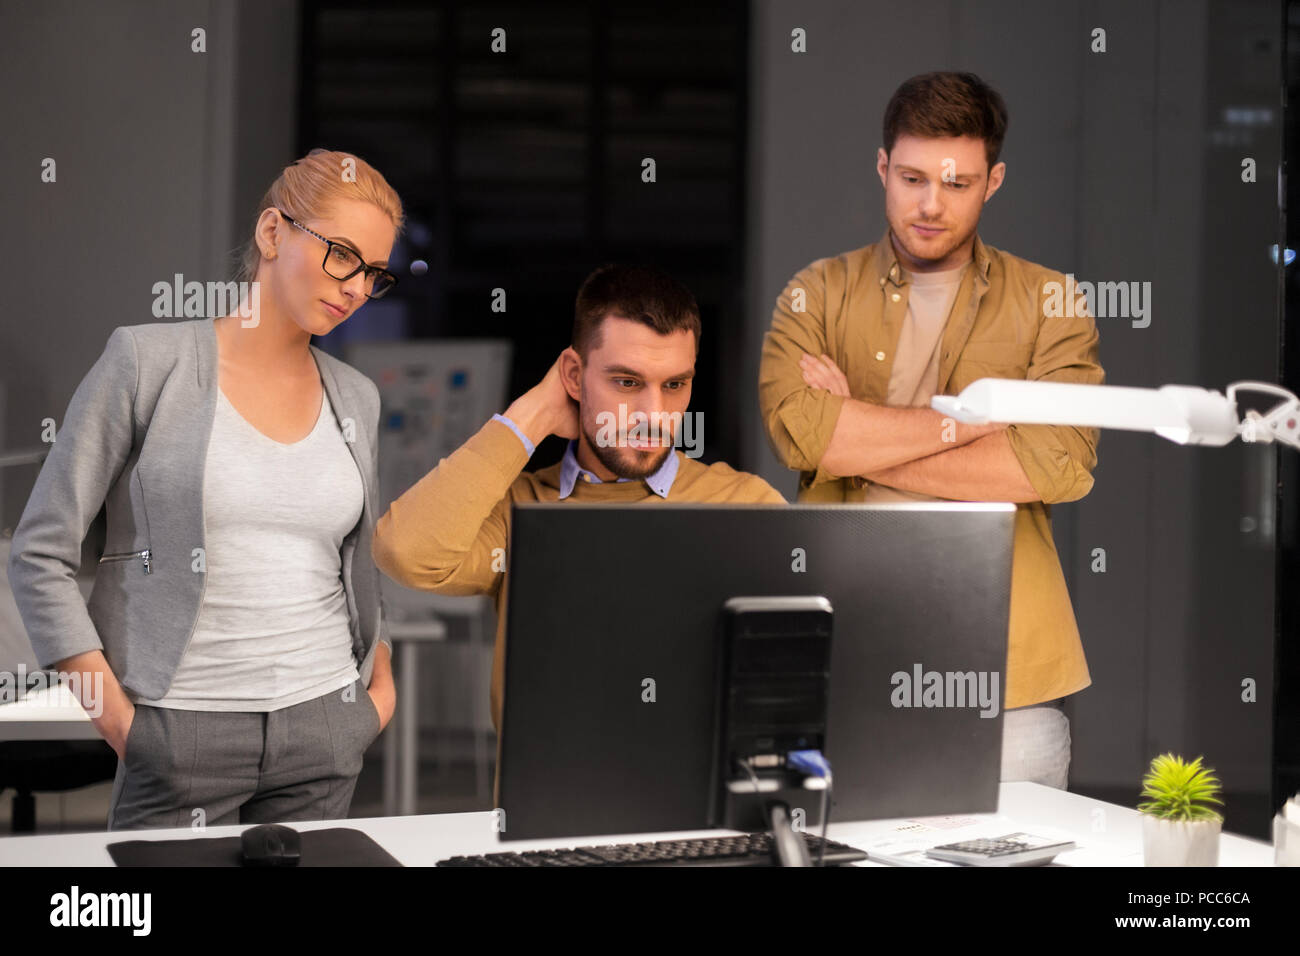 business team with computer working late at office - Stock Image